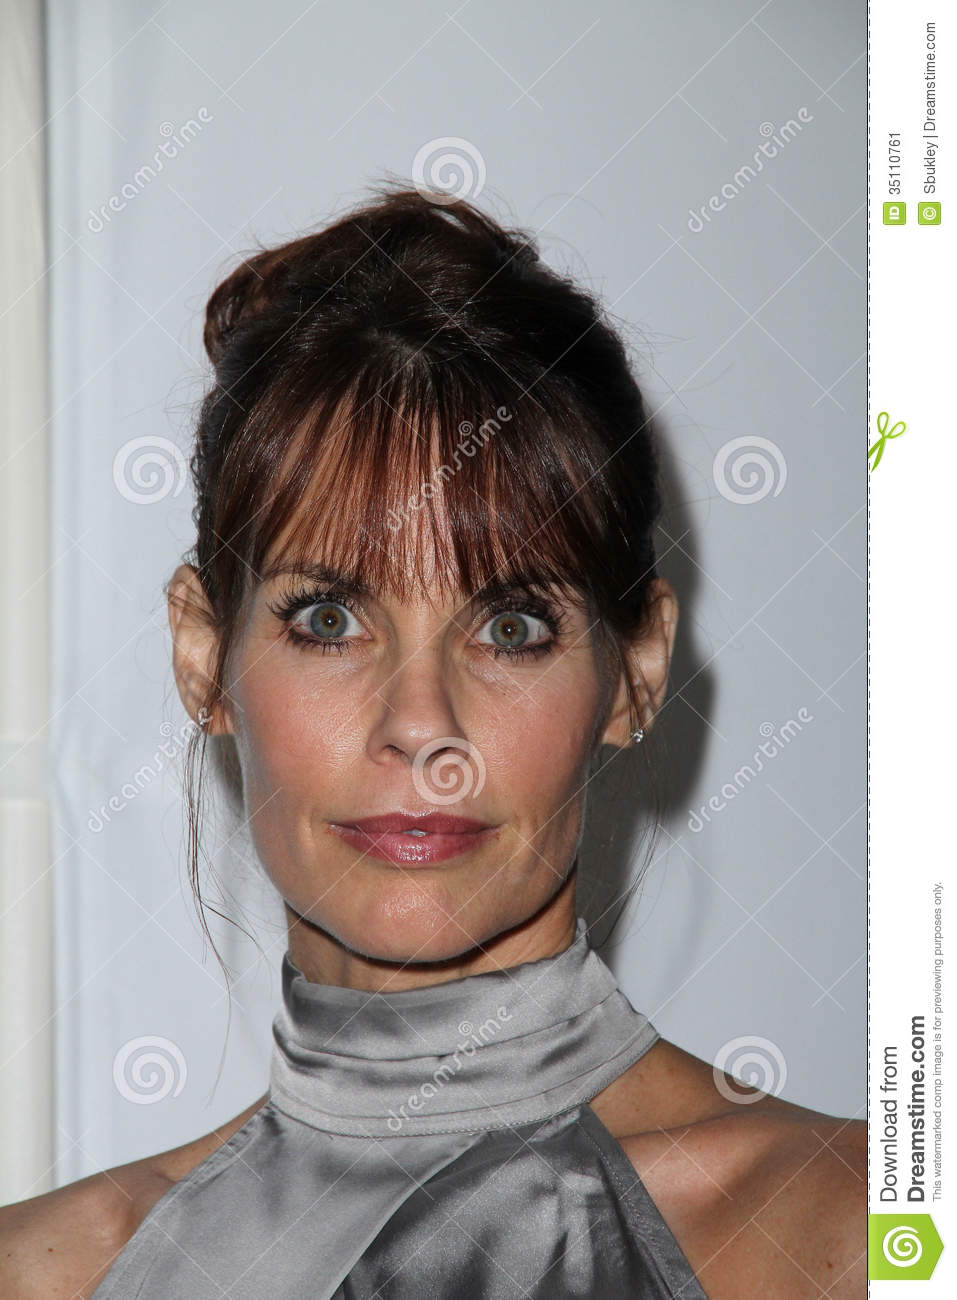 alexandra paul recruitment llpalexandra paul skating, alexandra paul / mitchell islam, alexandra paul borat, alexandra paul recruitment llp, alexandra paul instagram, alexandra paul perry mason, alexandra paul skate, alexandra paul ted talk, alexandra paul, alexandra paul baywatch, alexandra paul actress, alexandra paul christine, alexandra paul figure skater, alexandra paul mr skin, alexandra paul net worth, alexandra paul imdb, alexandra paul movies, alexandra paul twin